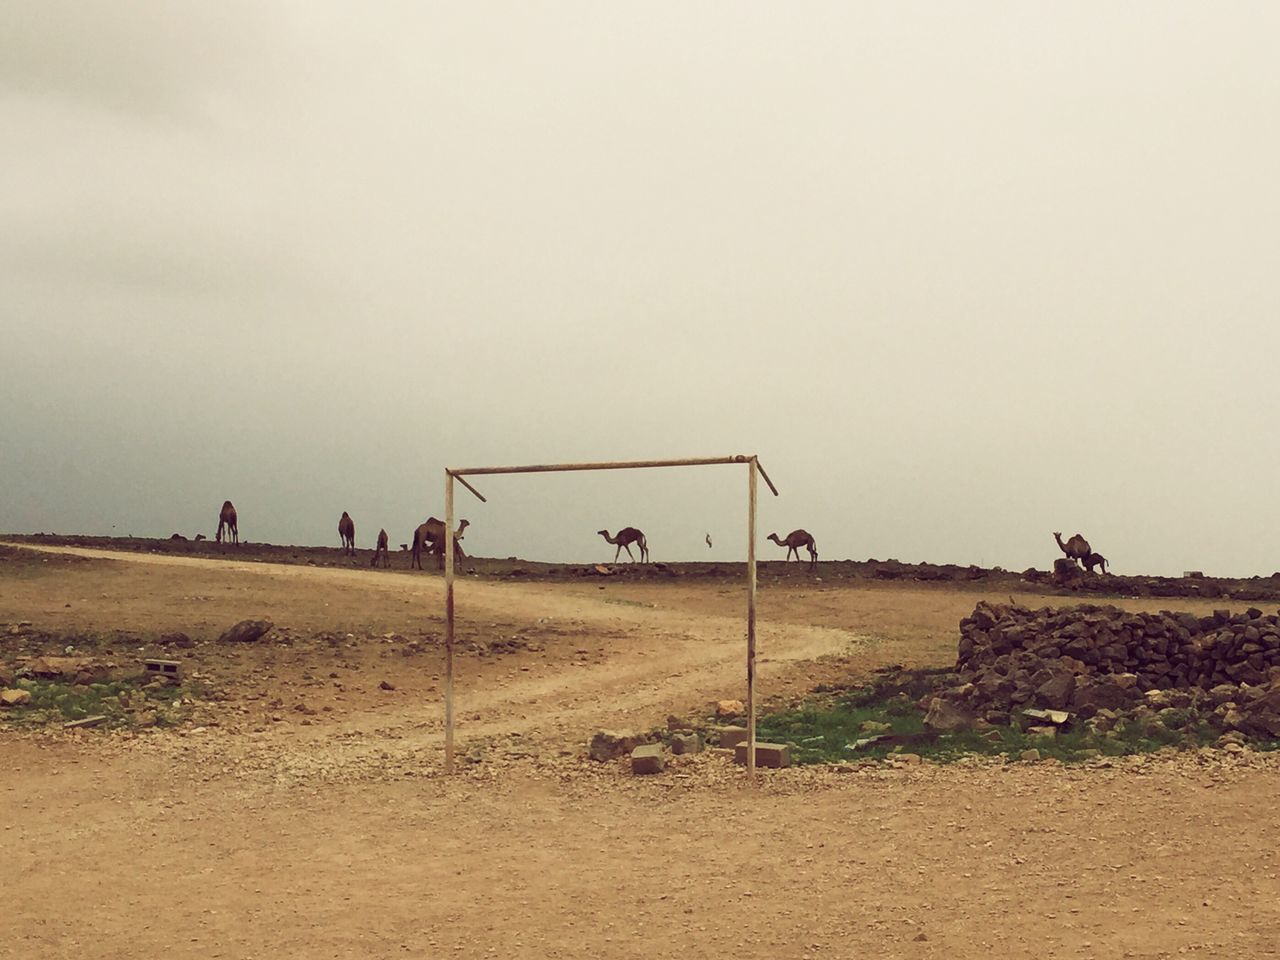 Good place to play football in Taqah, Oman. Camels are welcome Football Taqah Oman Camels Camels Love Football Soccer Field Camel Arab World Animal Oman_photography